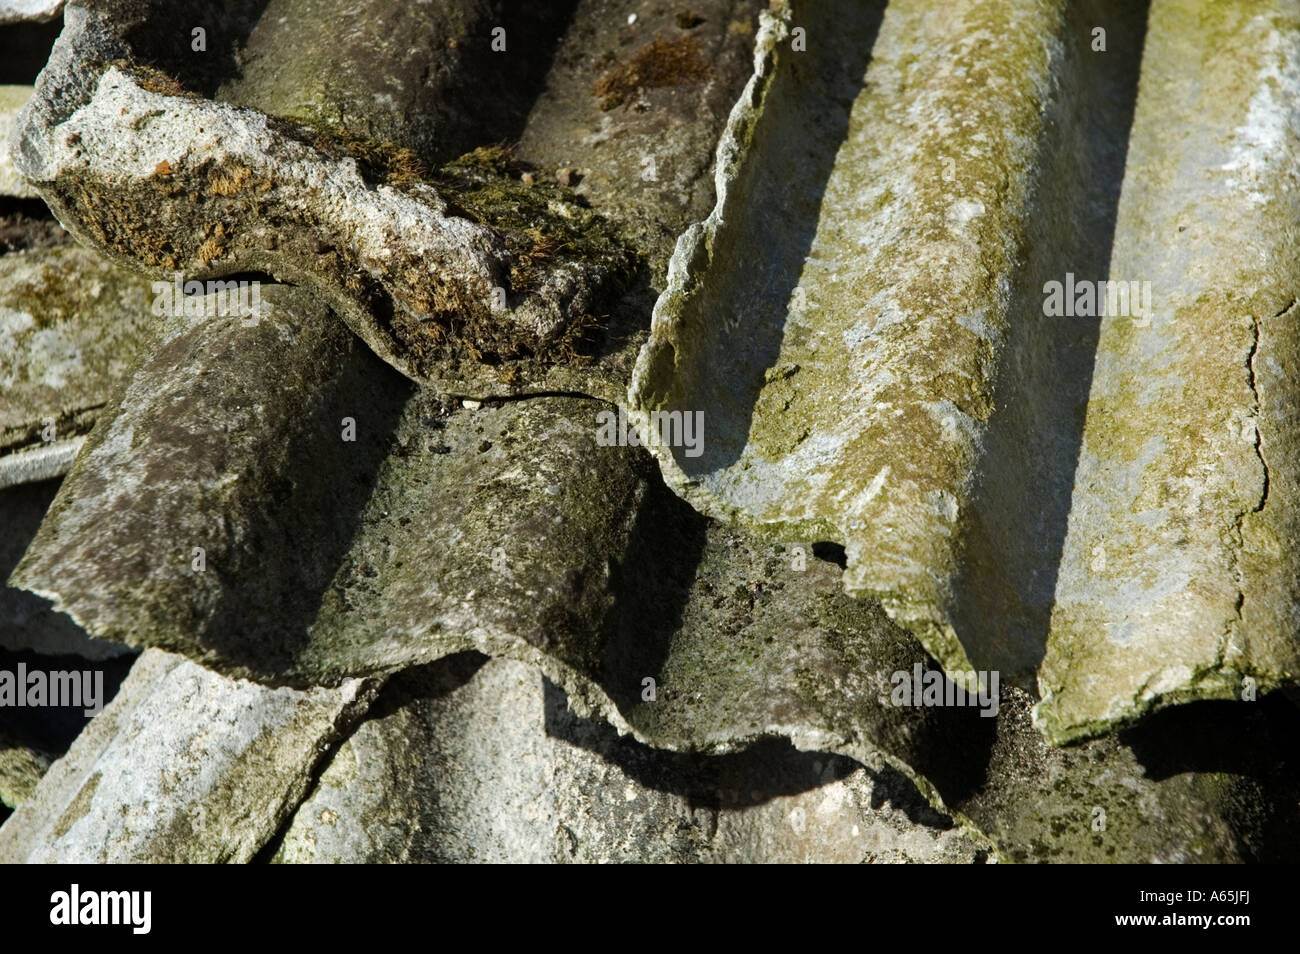 old broken asbestos roofing sheets - Stock Image